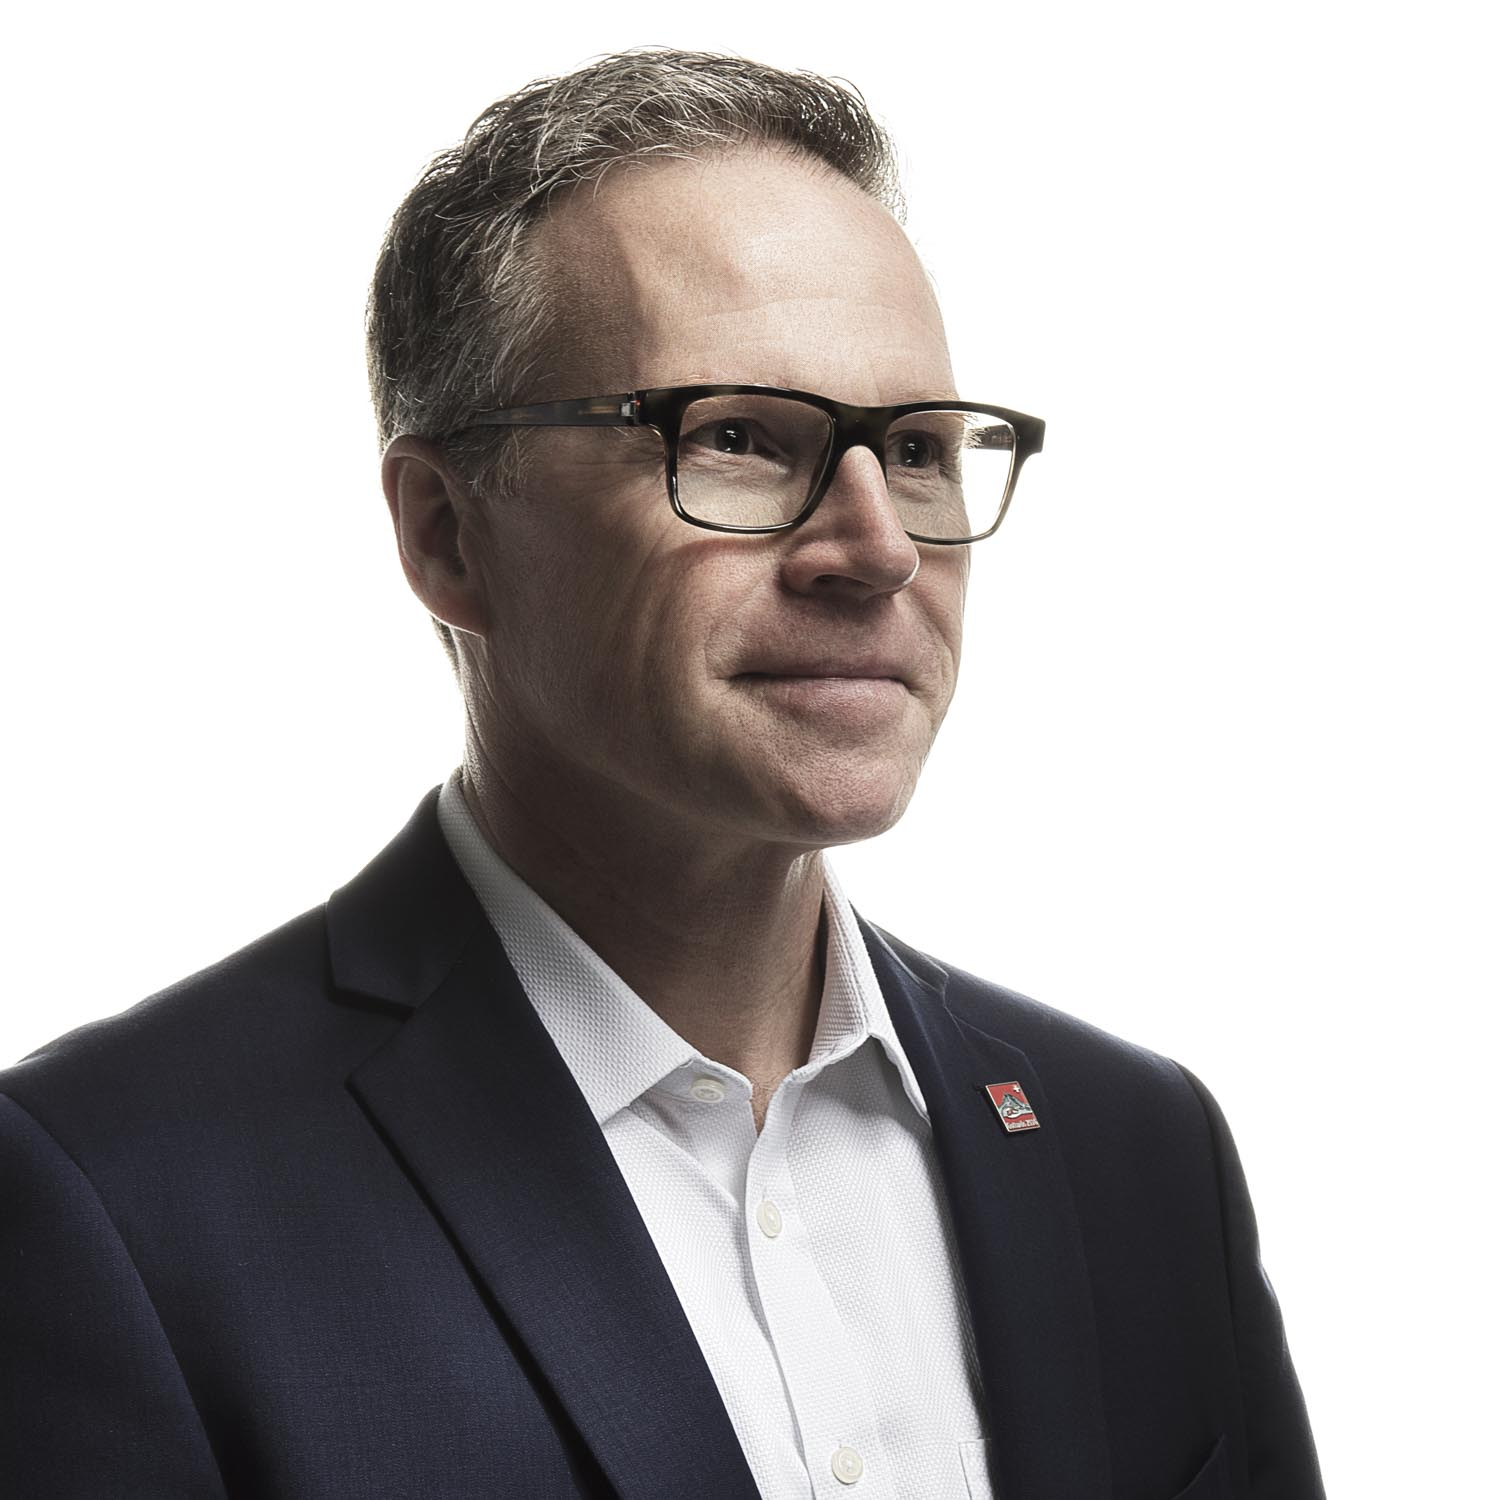 CEO der SBB: Andreas Meyer.